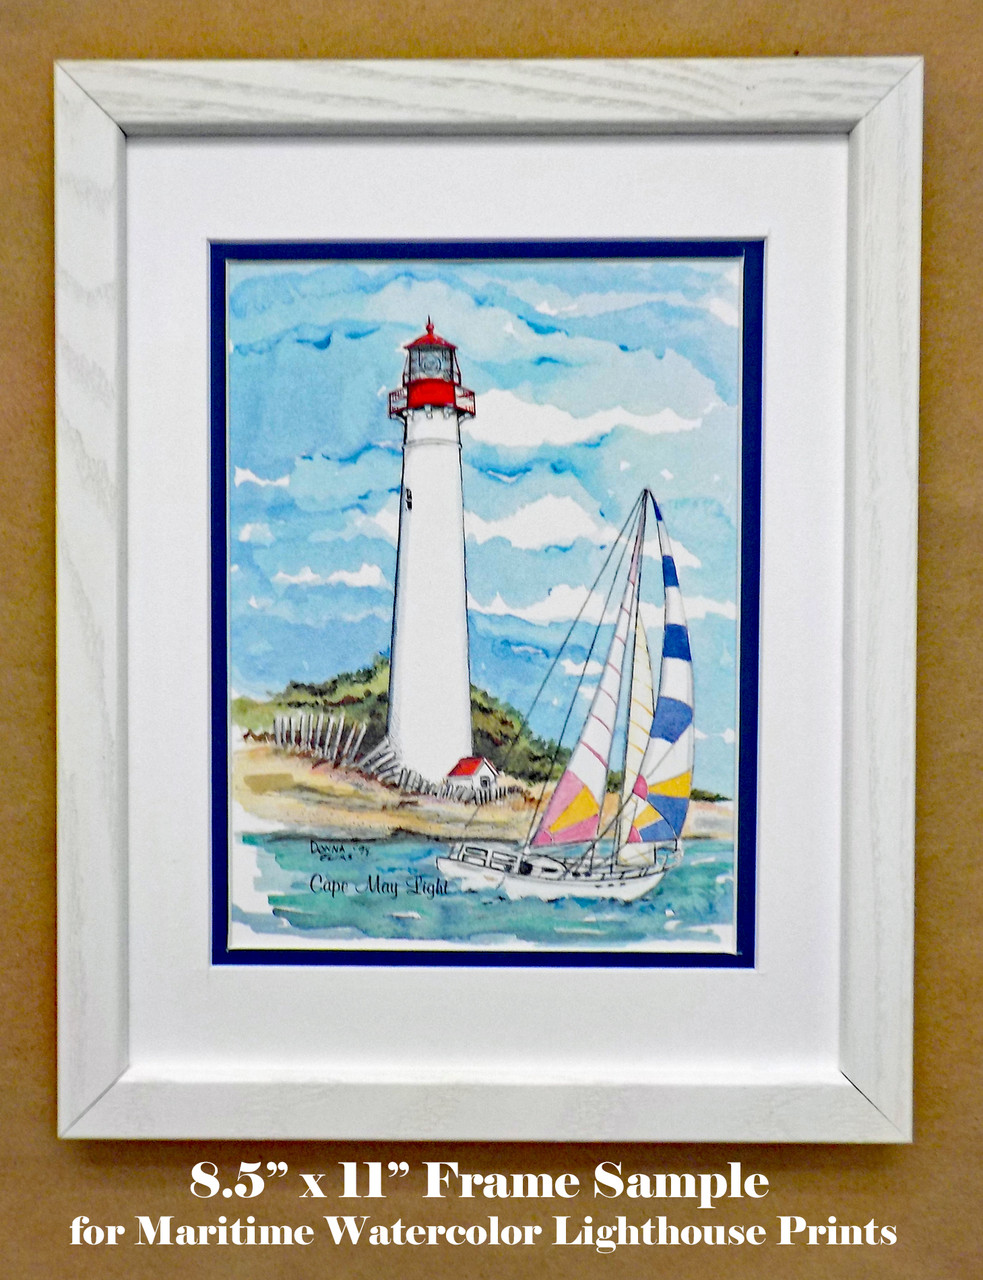 Frame and matting sample shown with Cape May Lighthouse